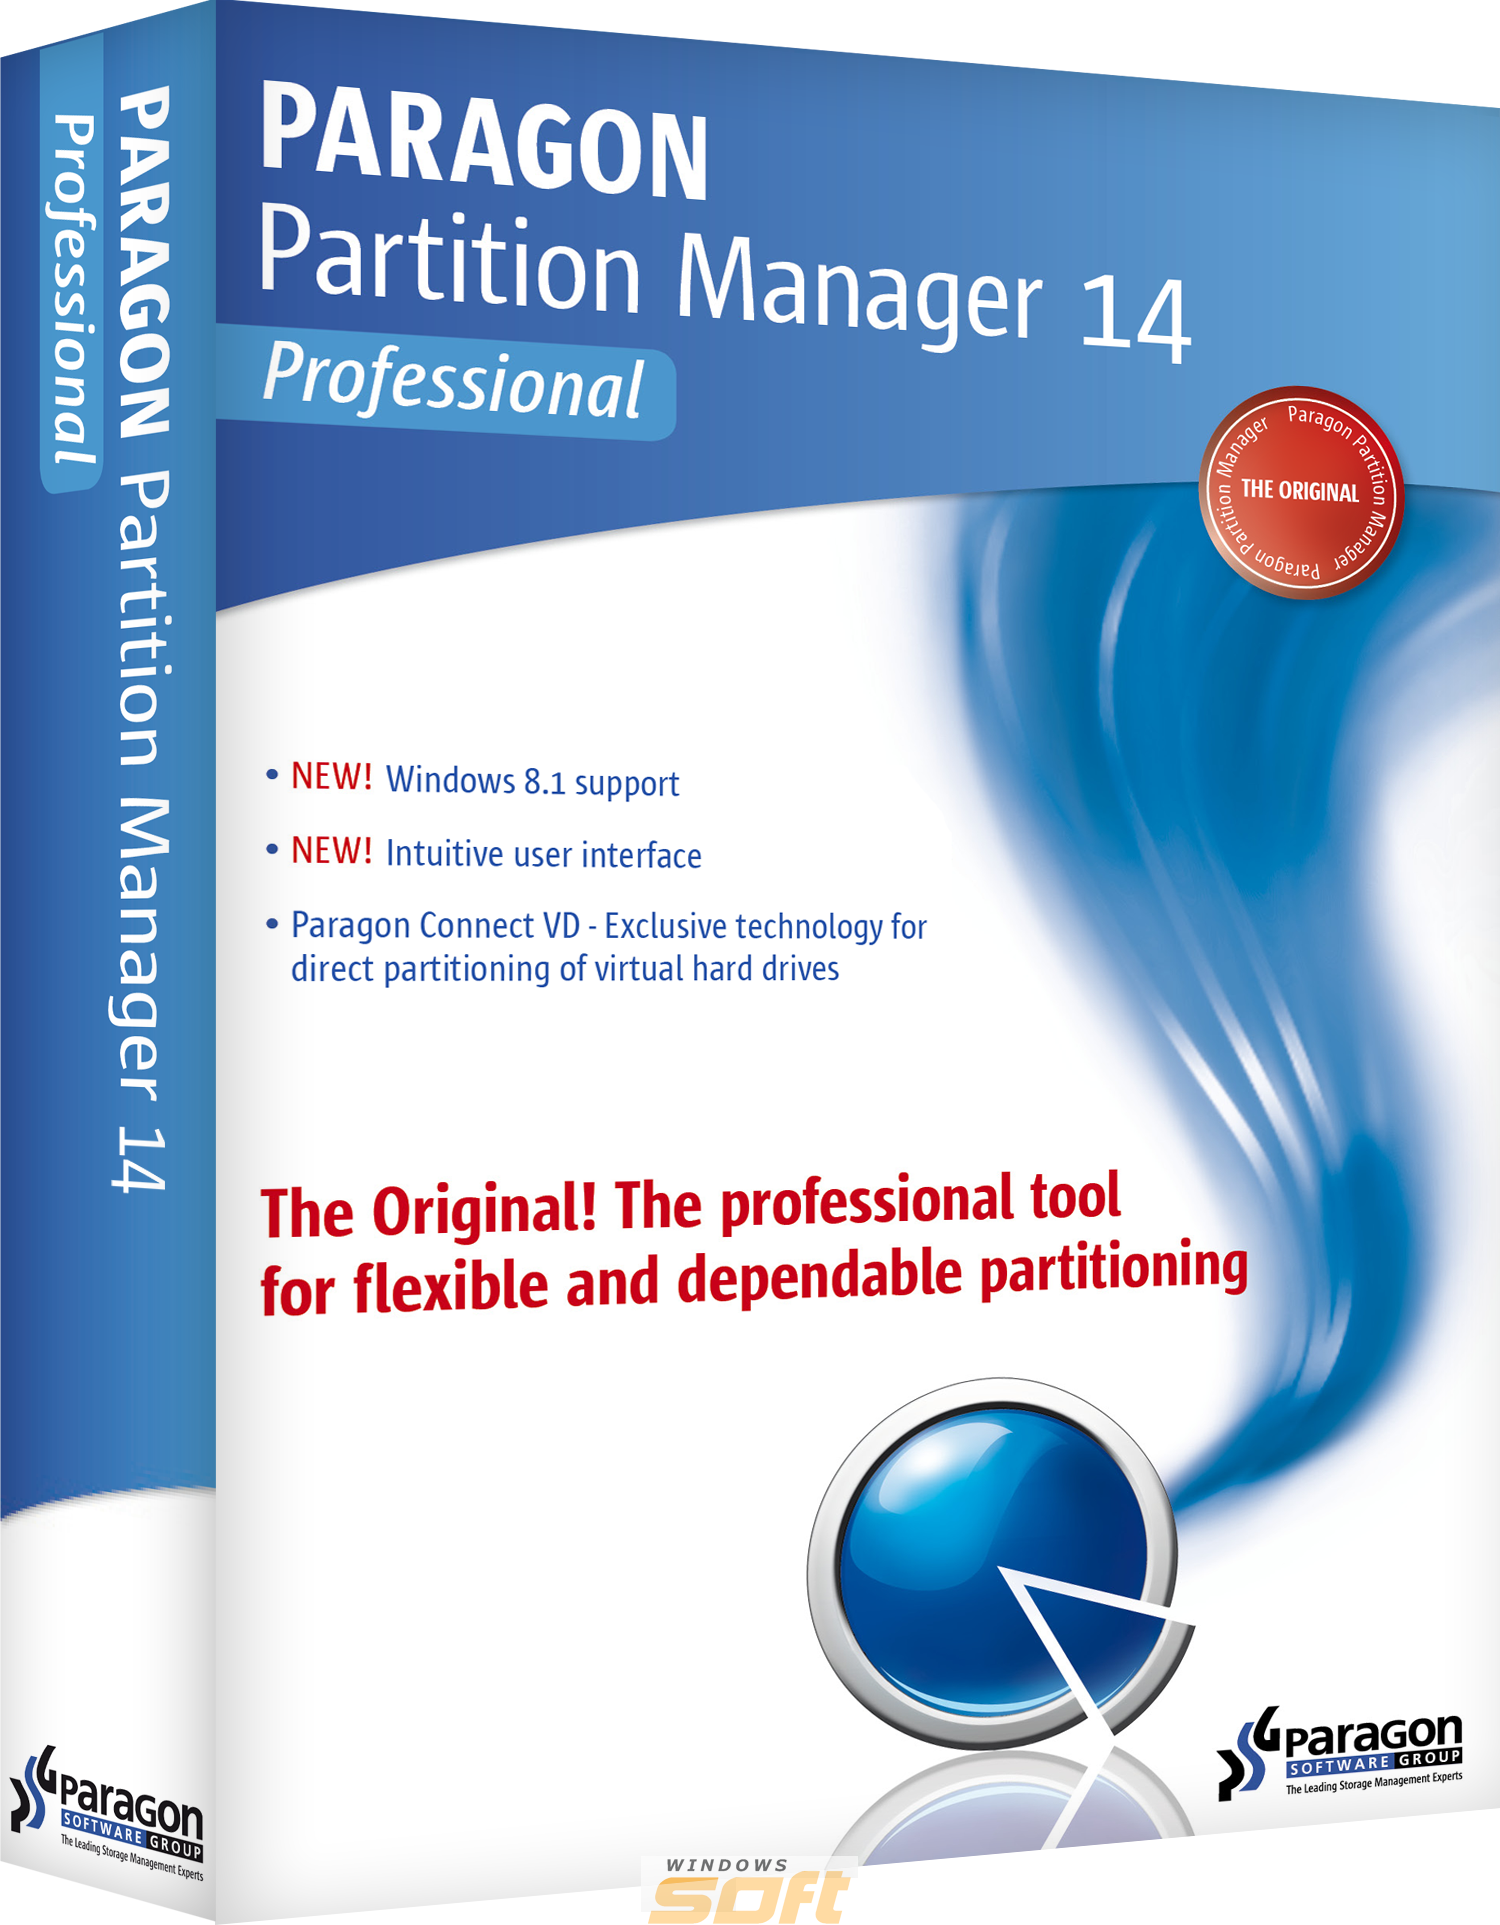 ������ Paragon Partition Manager 14 Professional single license PRGN18032014-53 �� ��������� ����